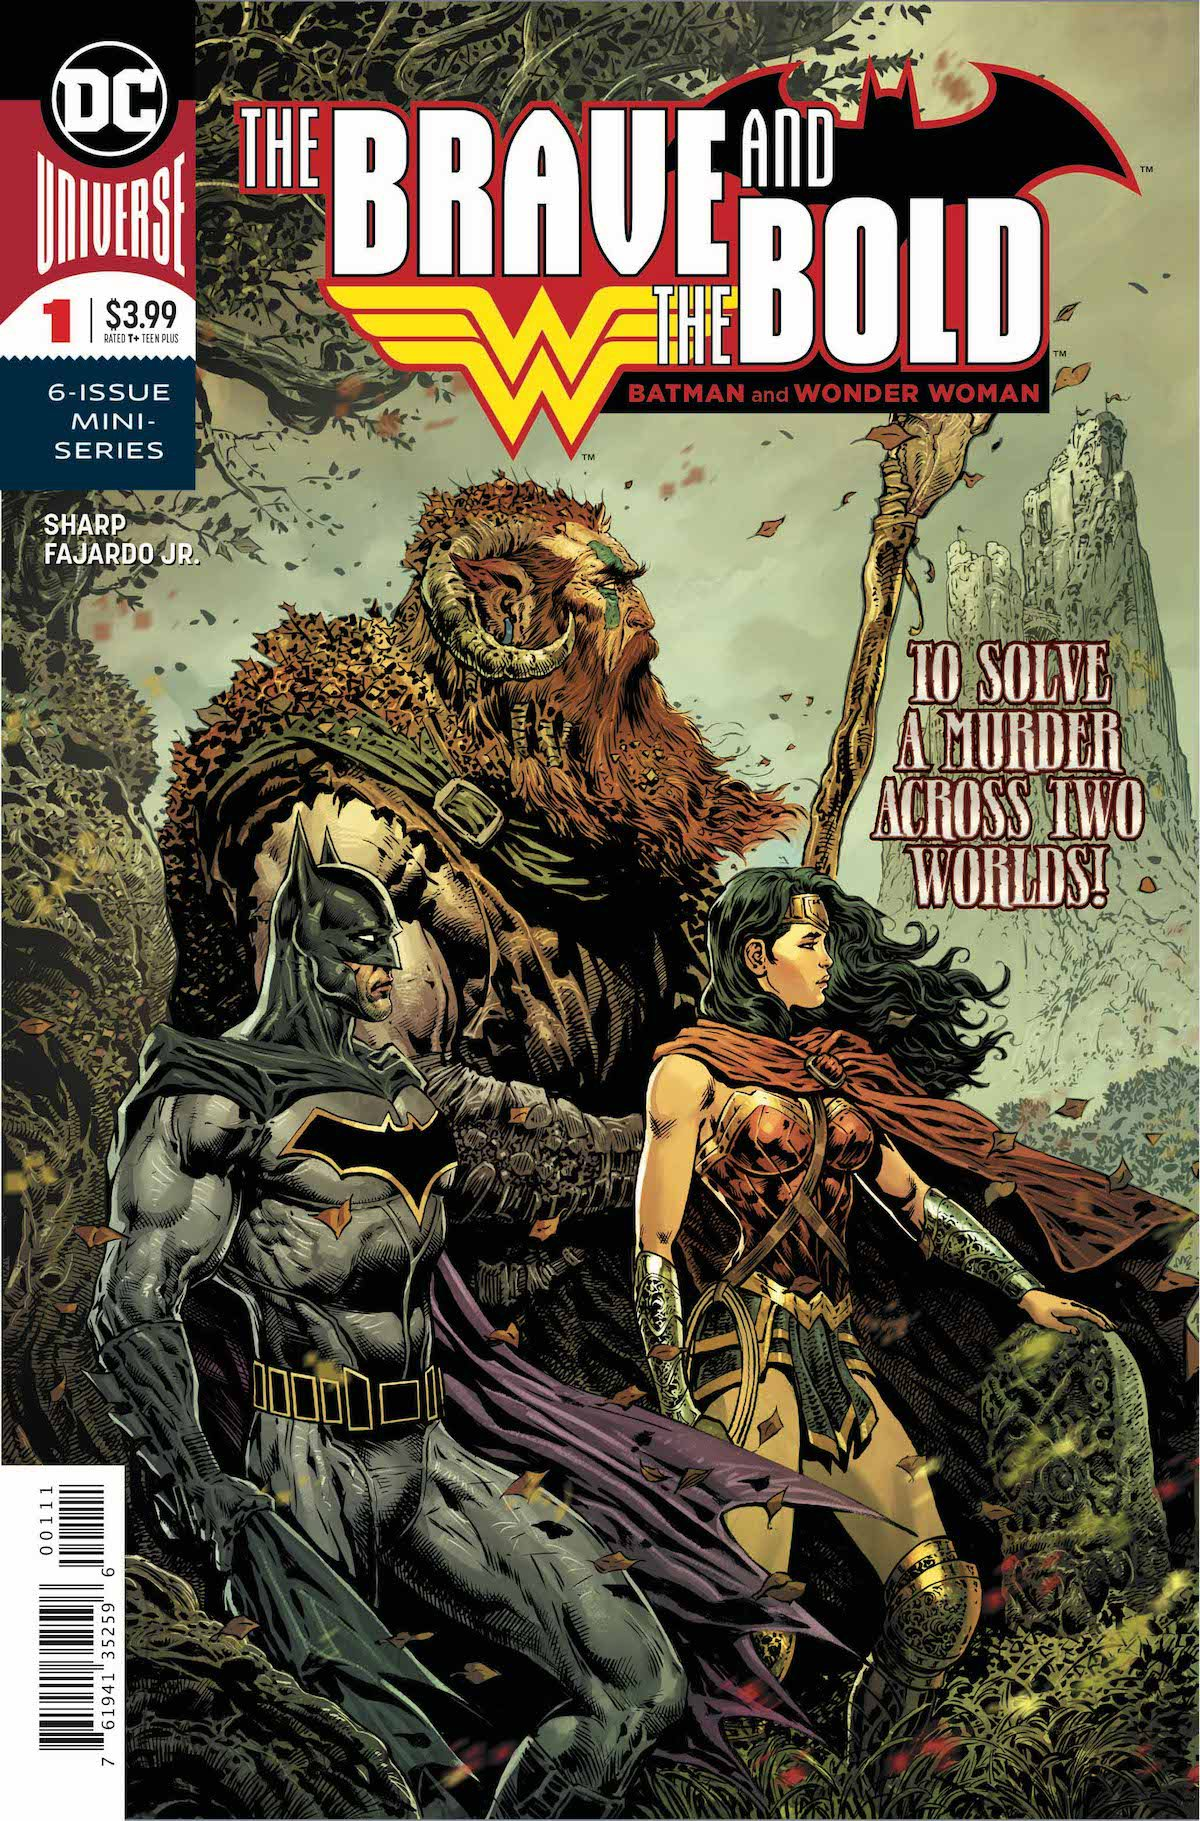 The Brave and the Bold: Batman and Wonder Woman #1 cover